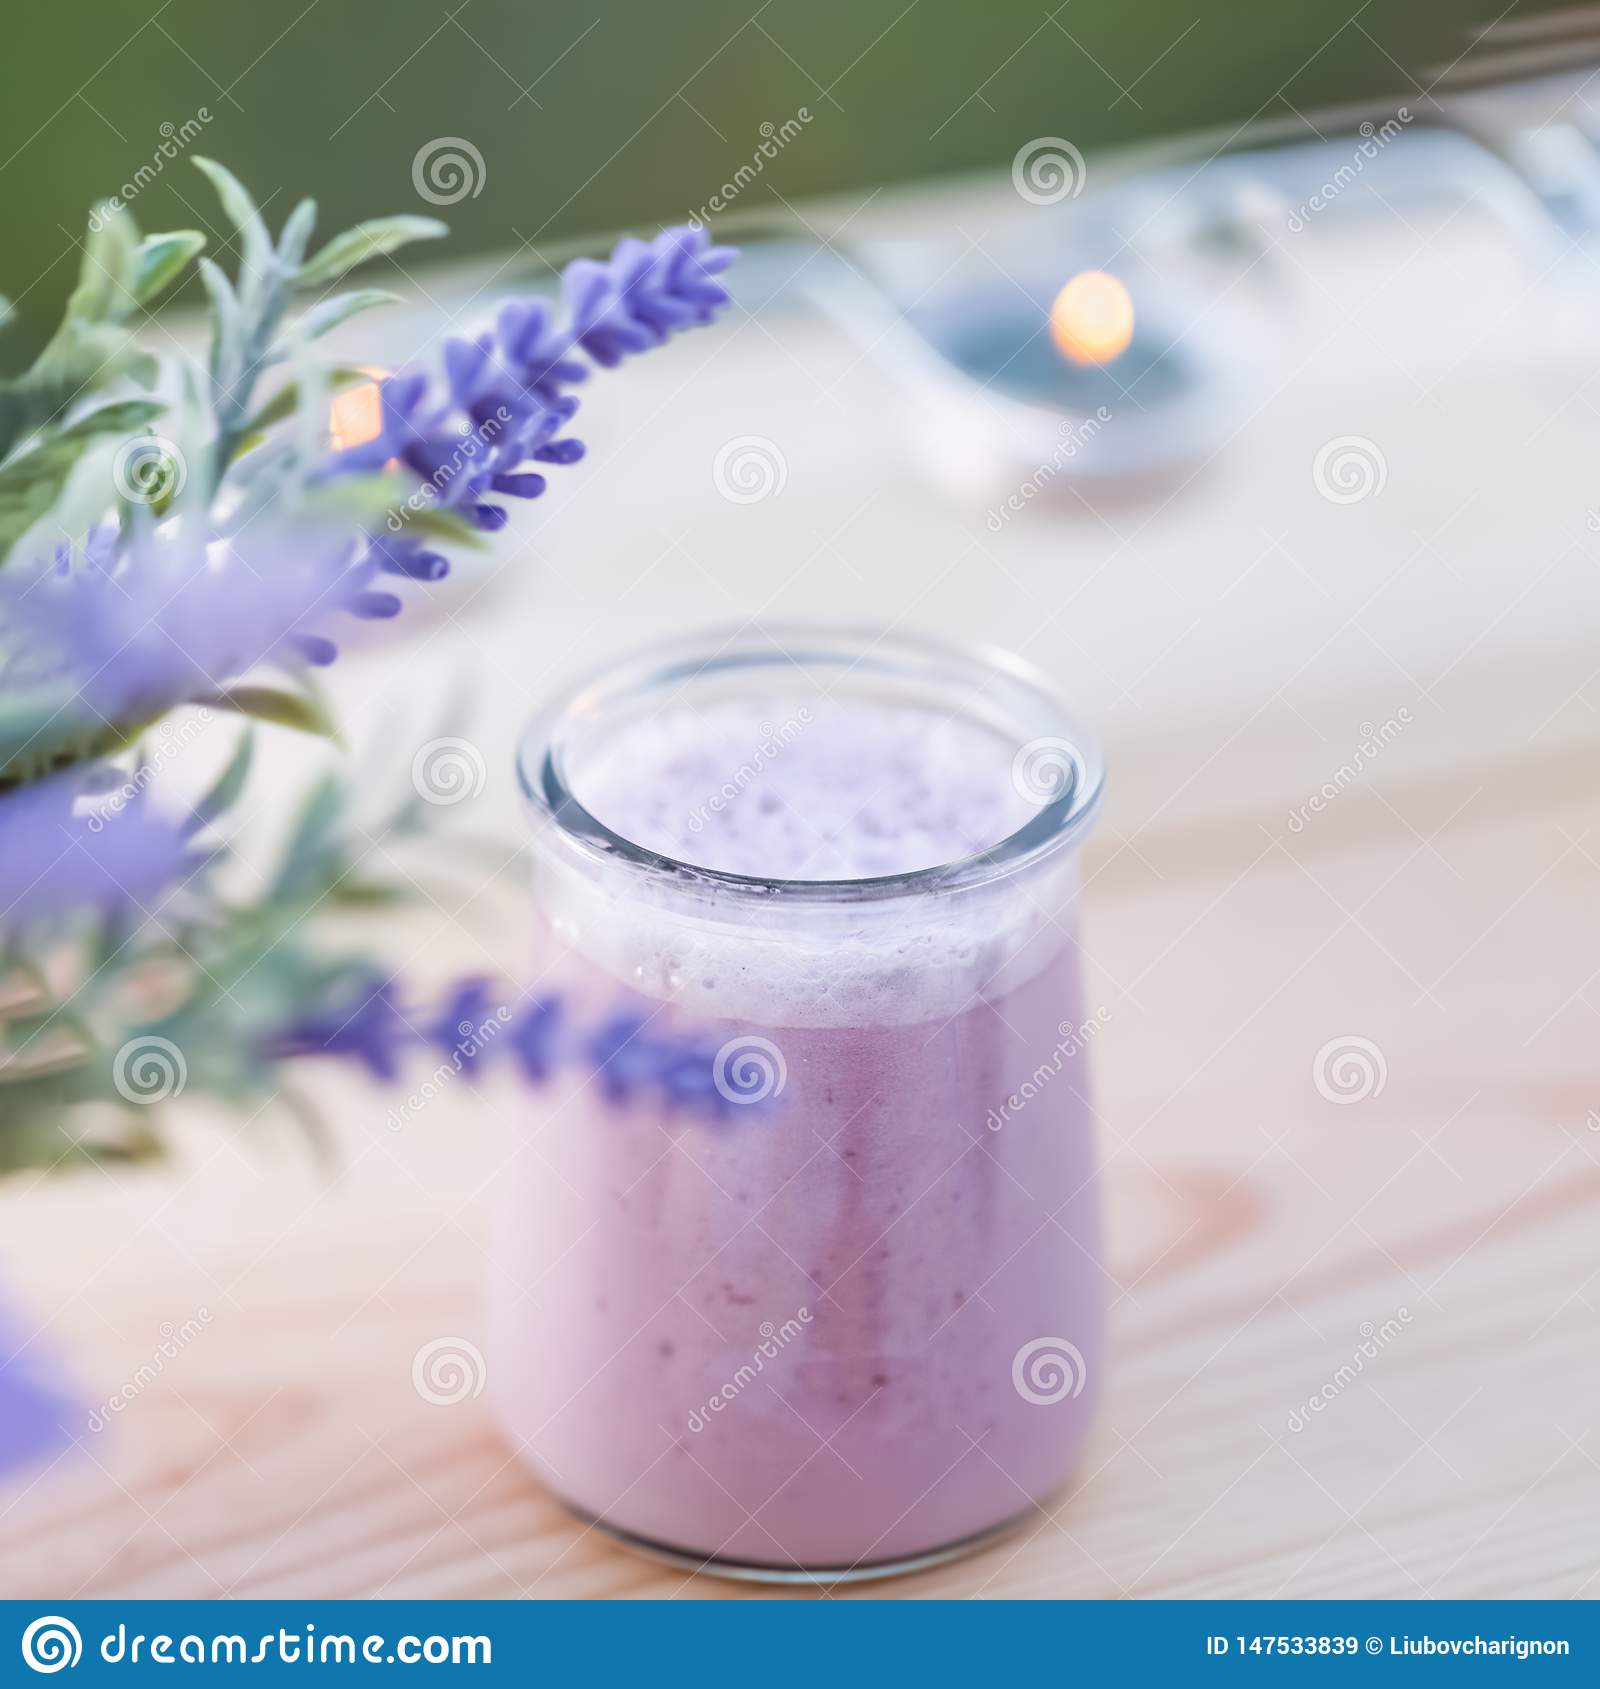 Homemade yogurt with blueberry in jars in an orchard in summertime. Evening light.